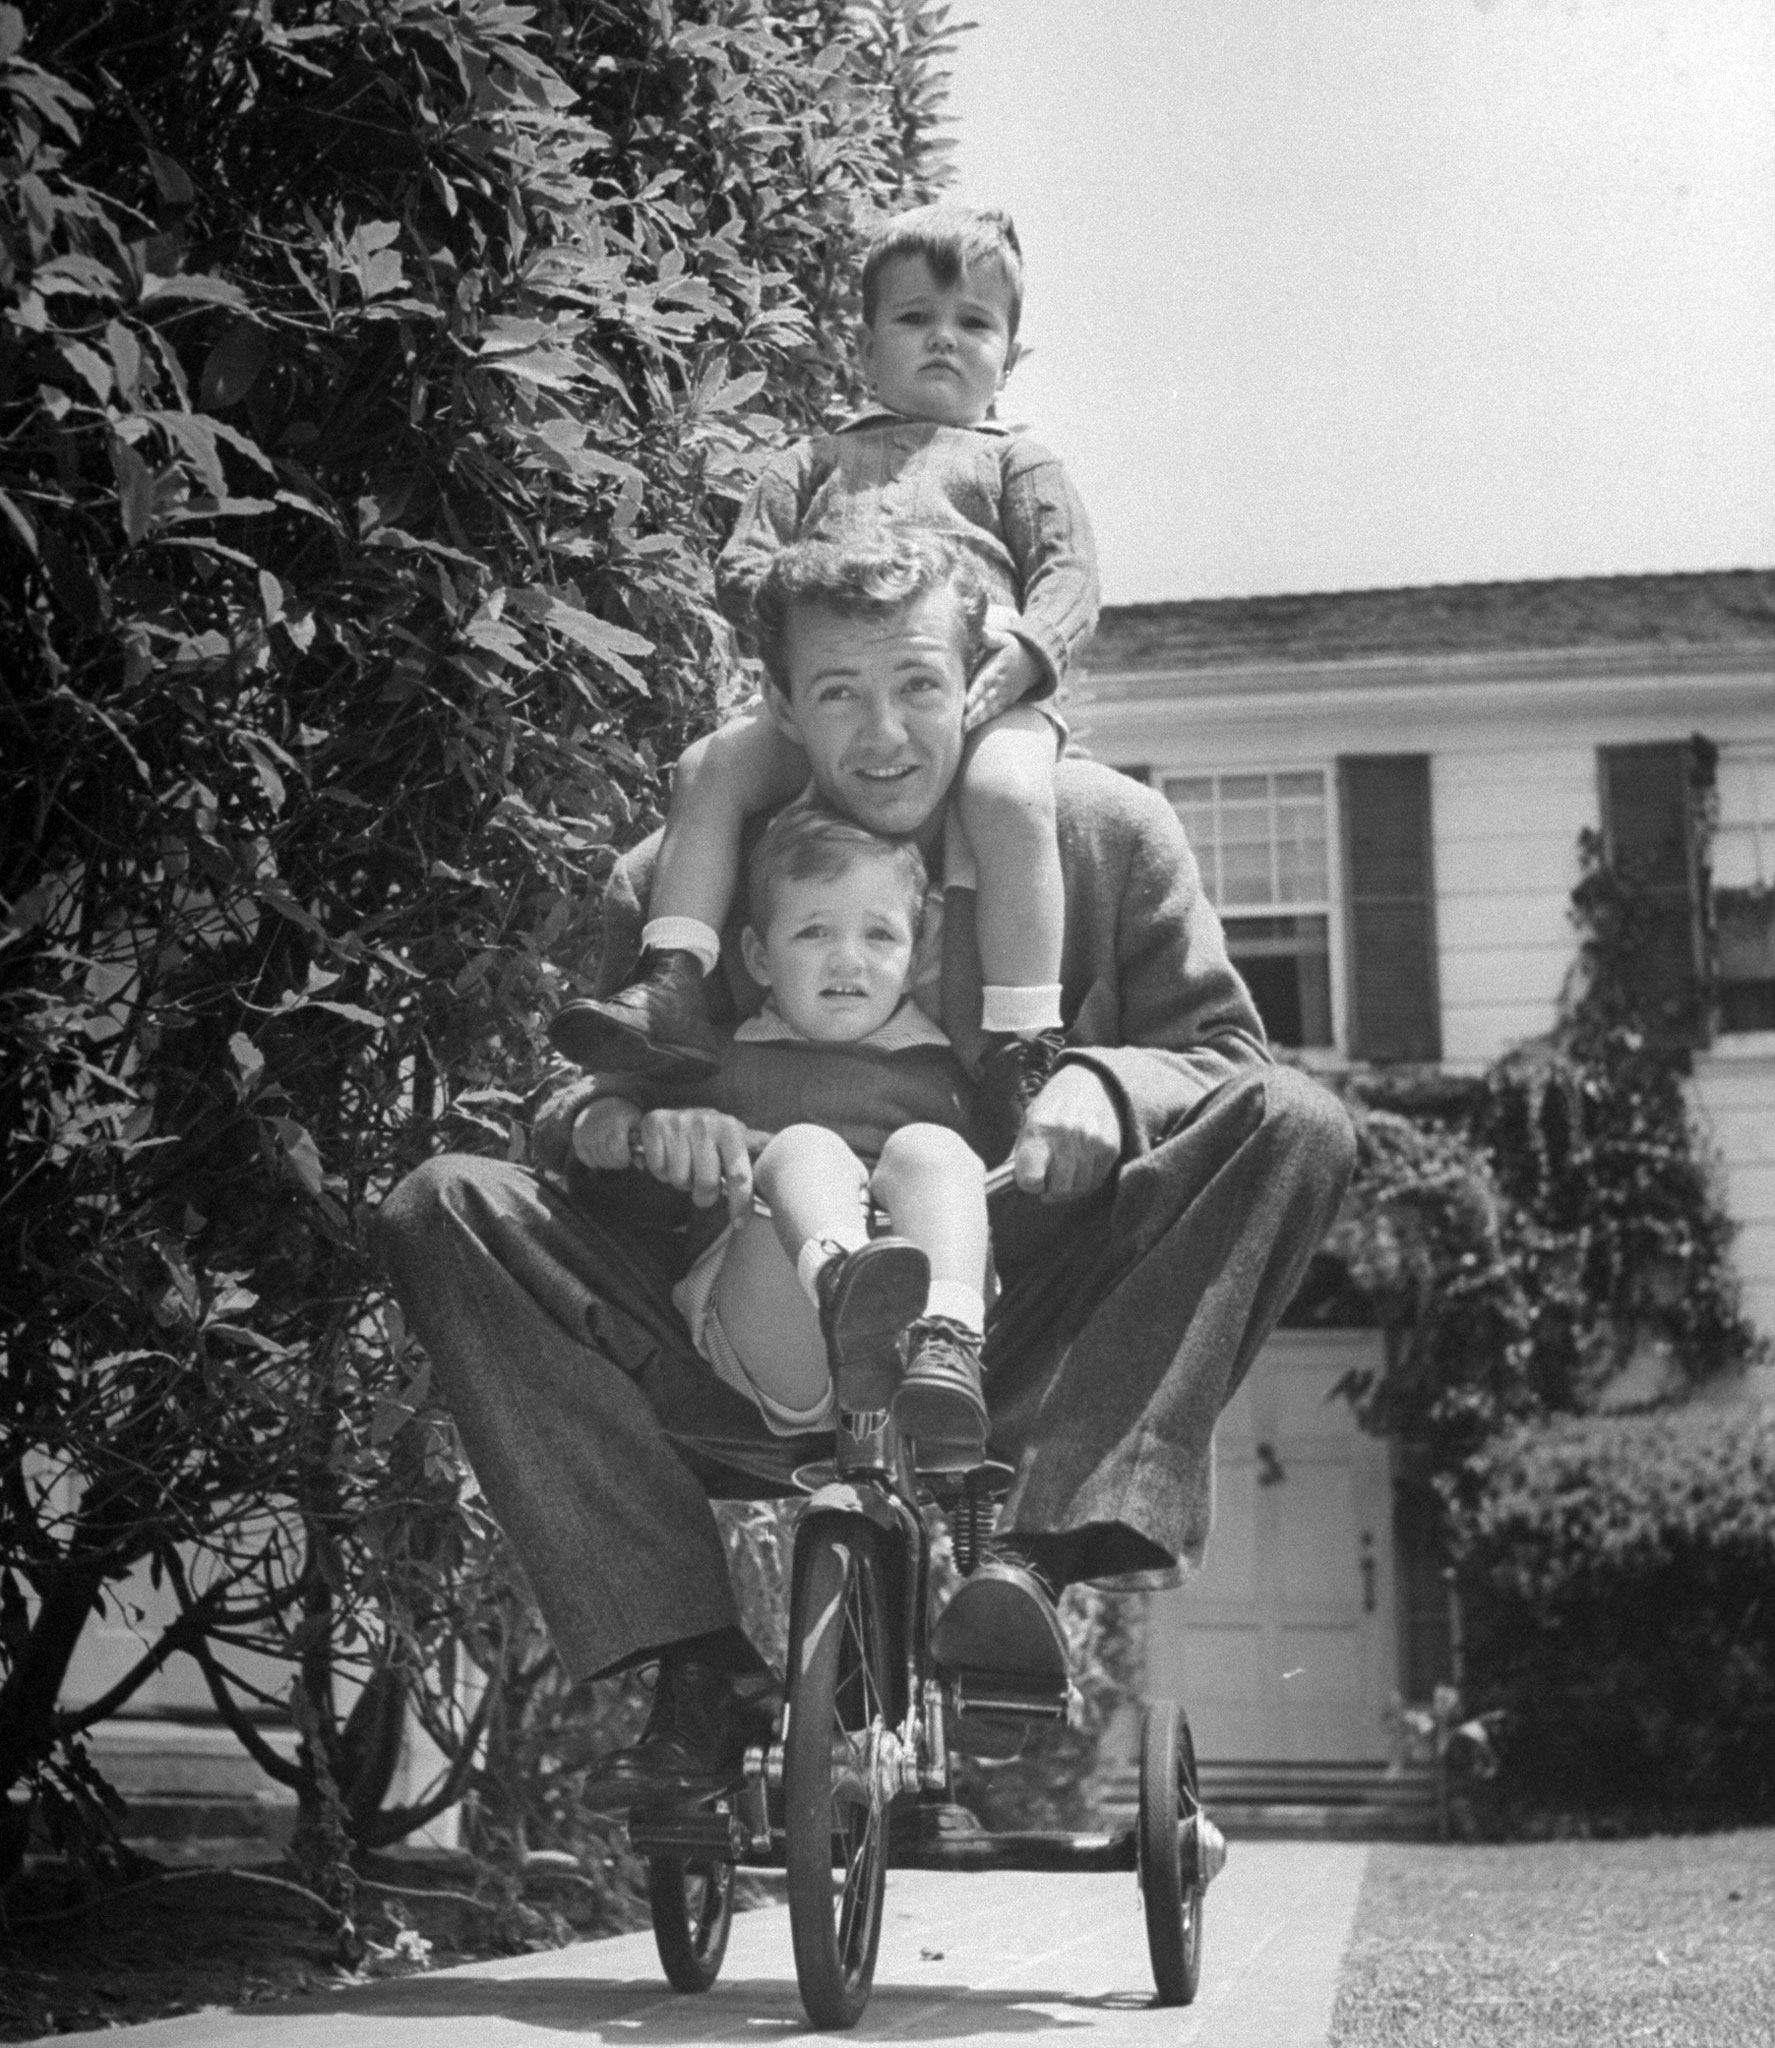 Robert Walker, who was never nominated. Pictured riding a tricycle with his two sons, 1943.